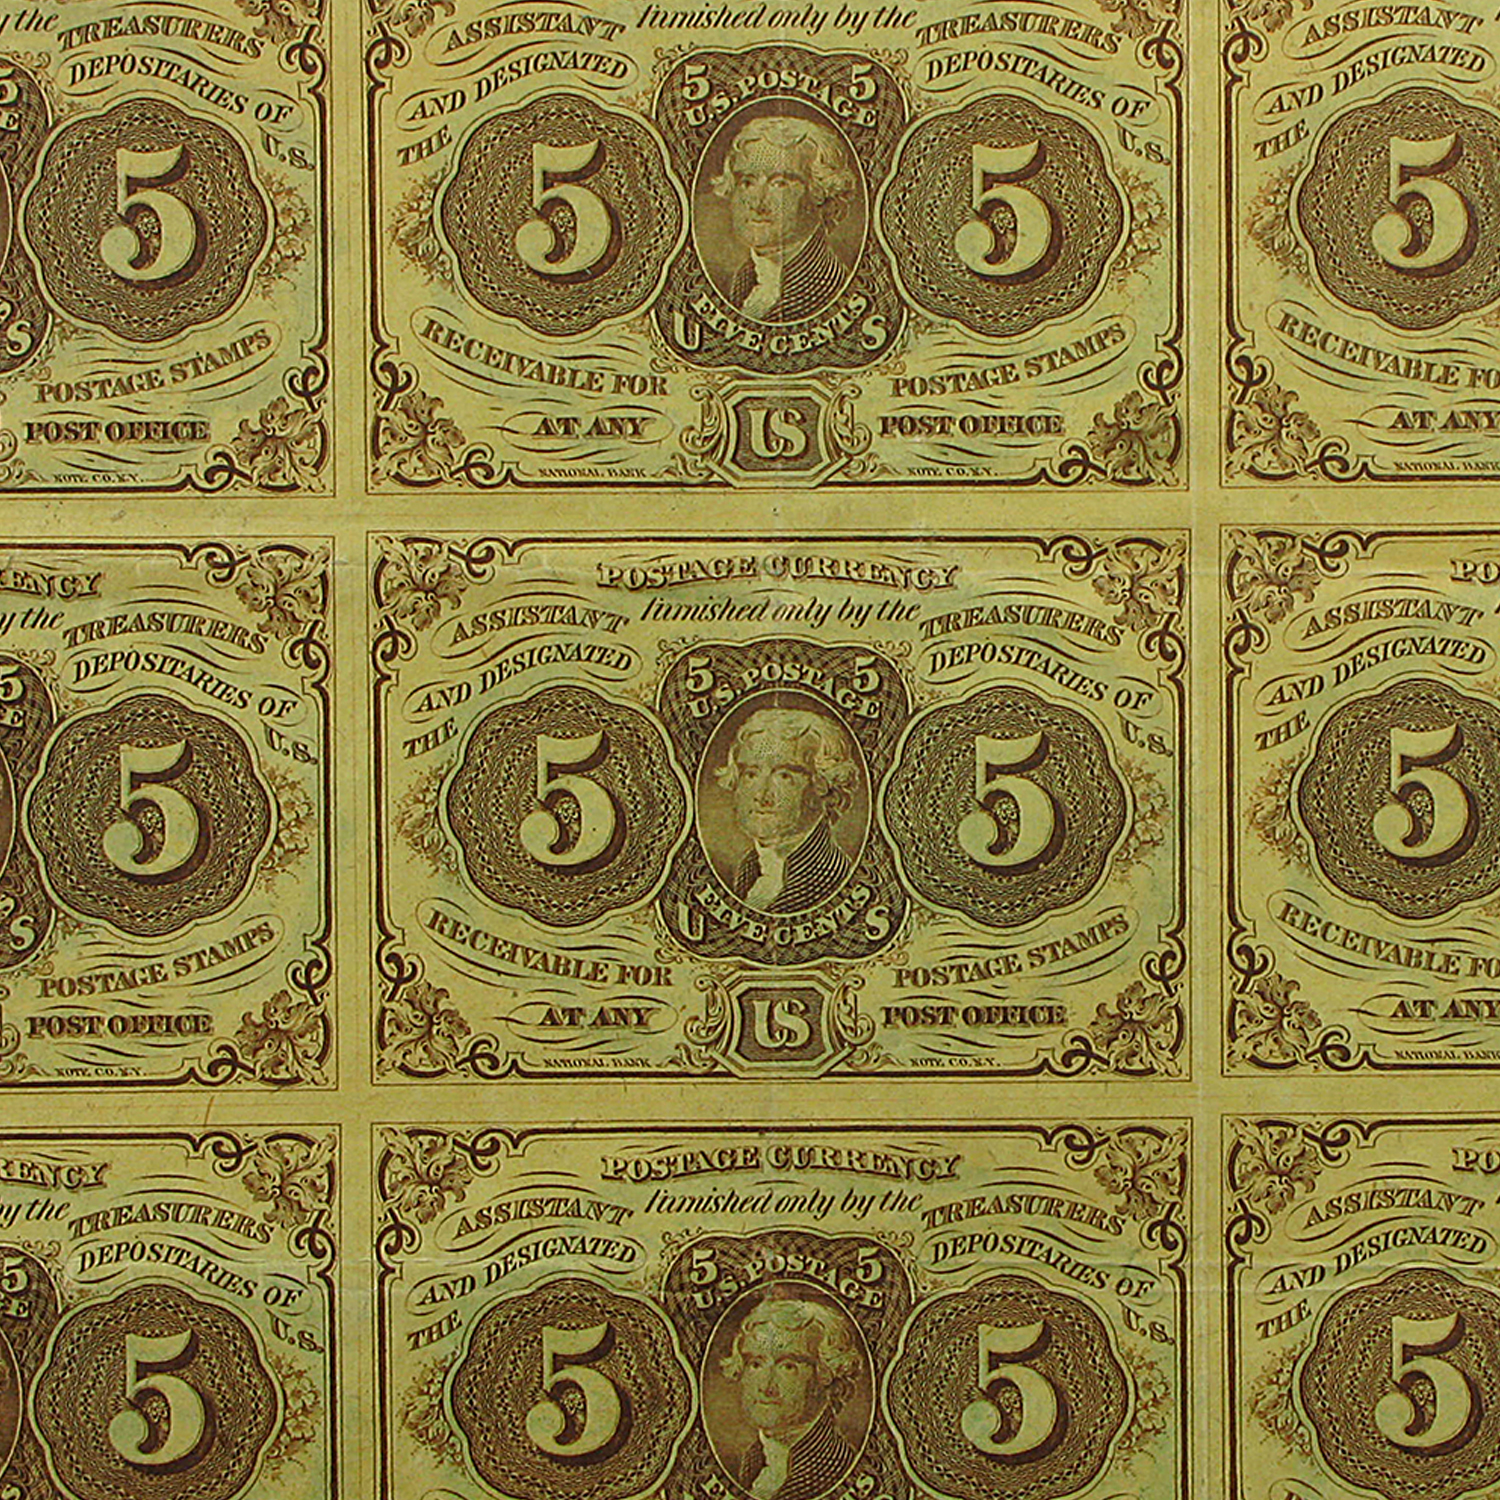 1st Issue Fractional Currency 5 Cents CU (11 Note Uncut Sheet)